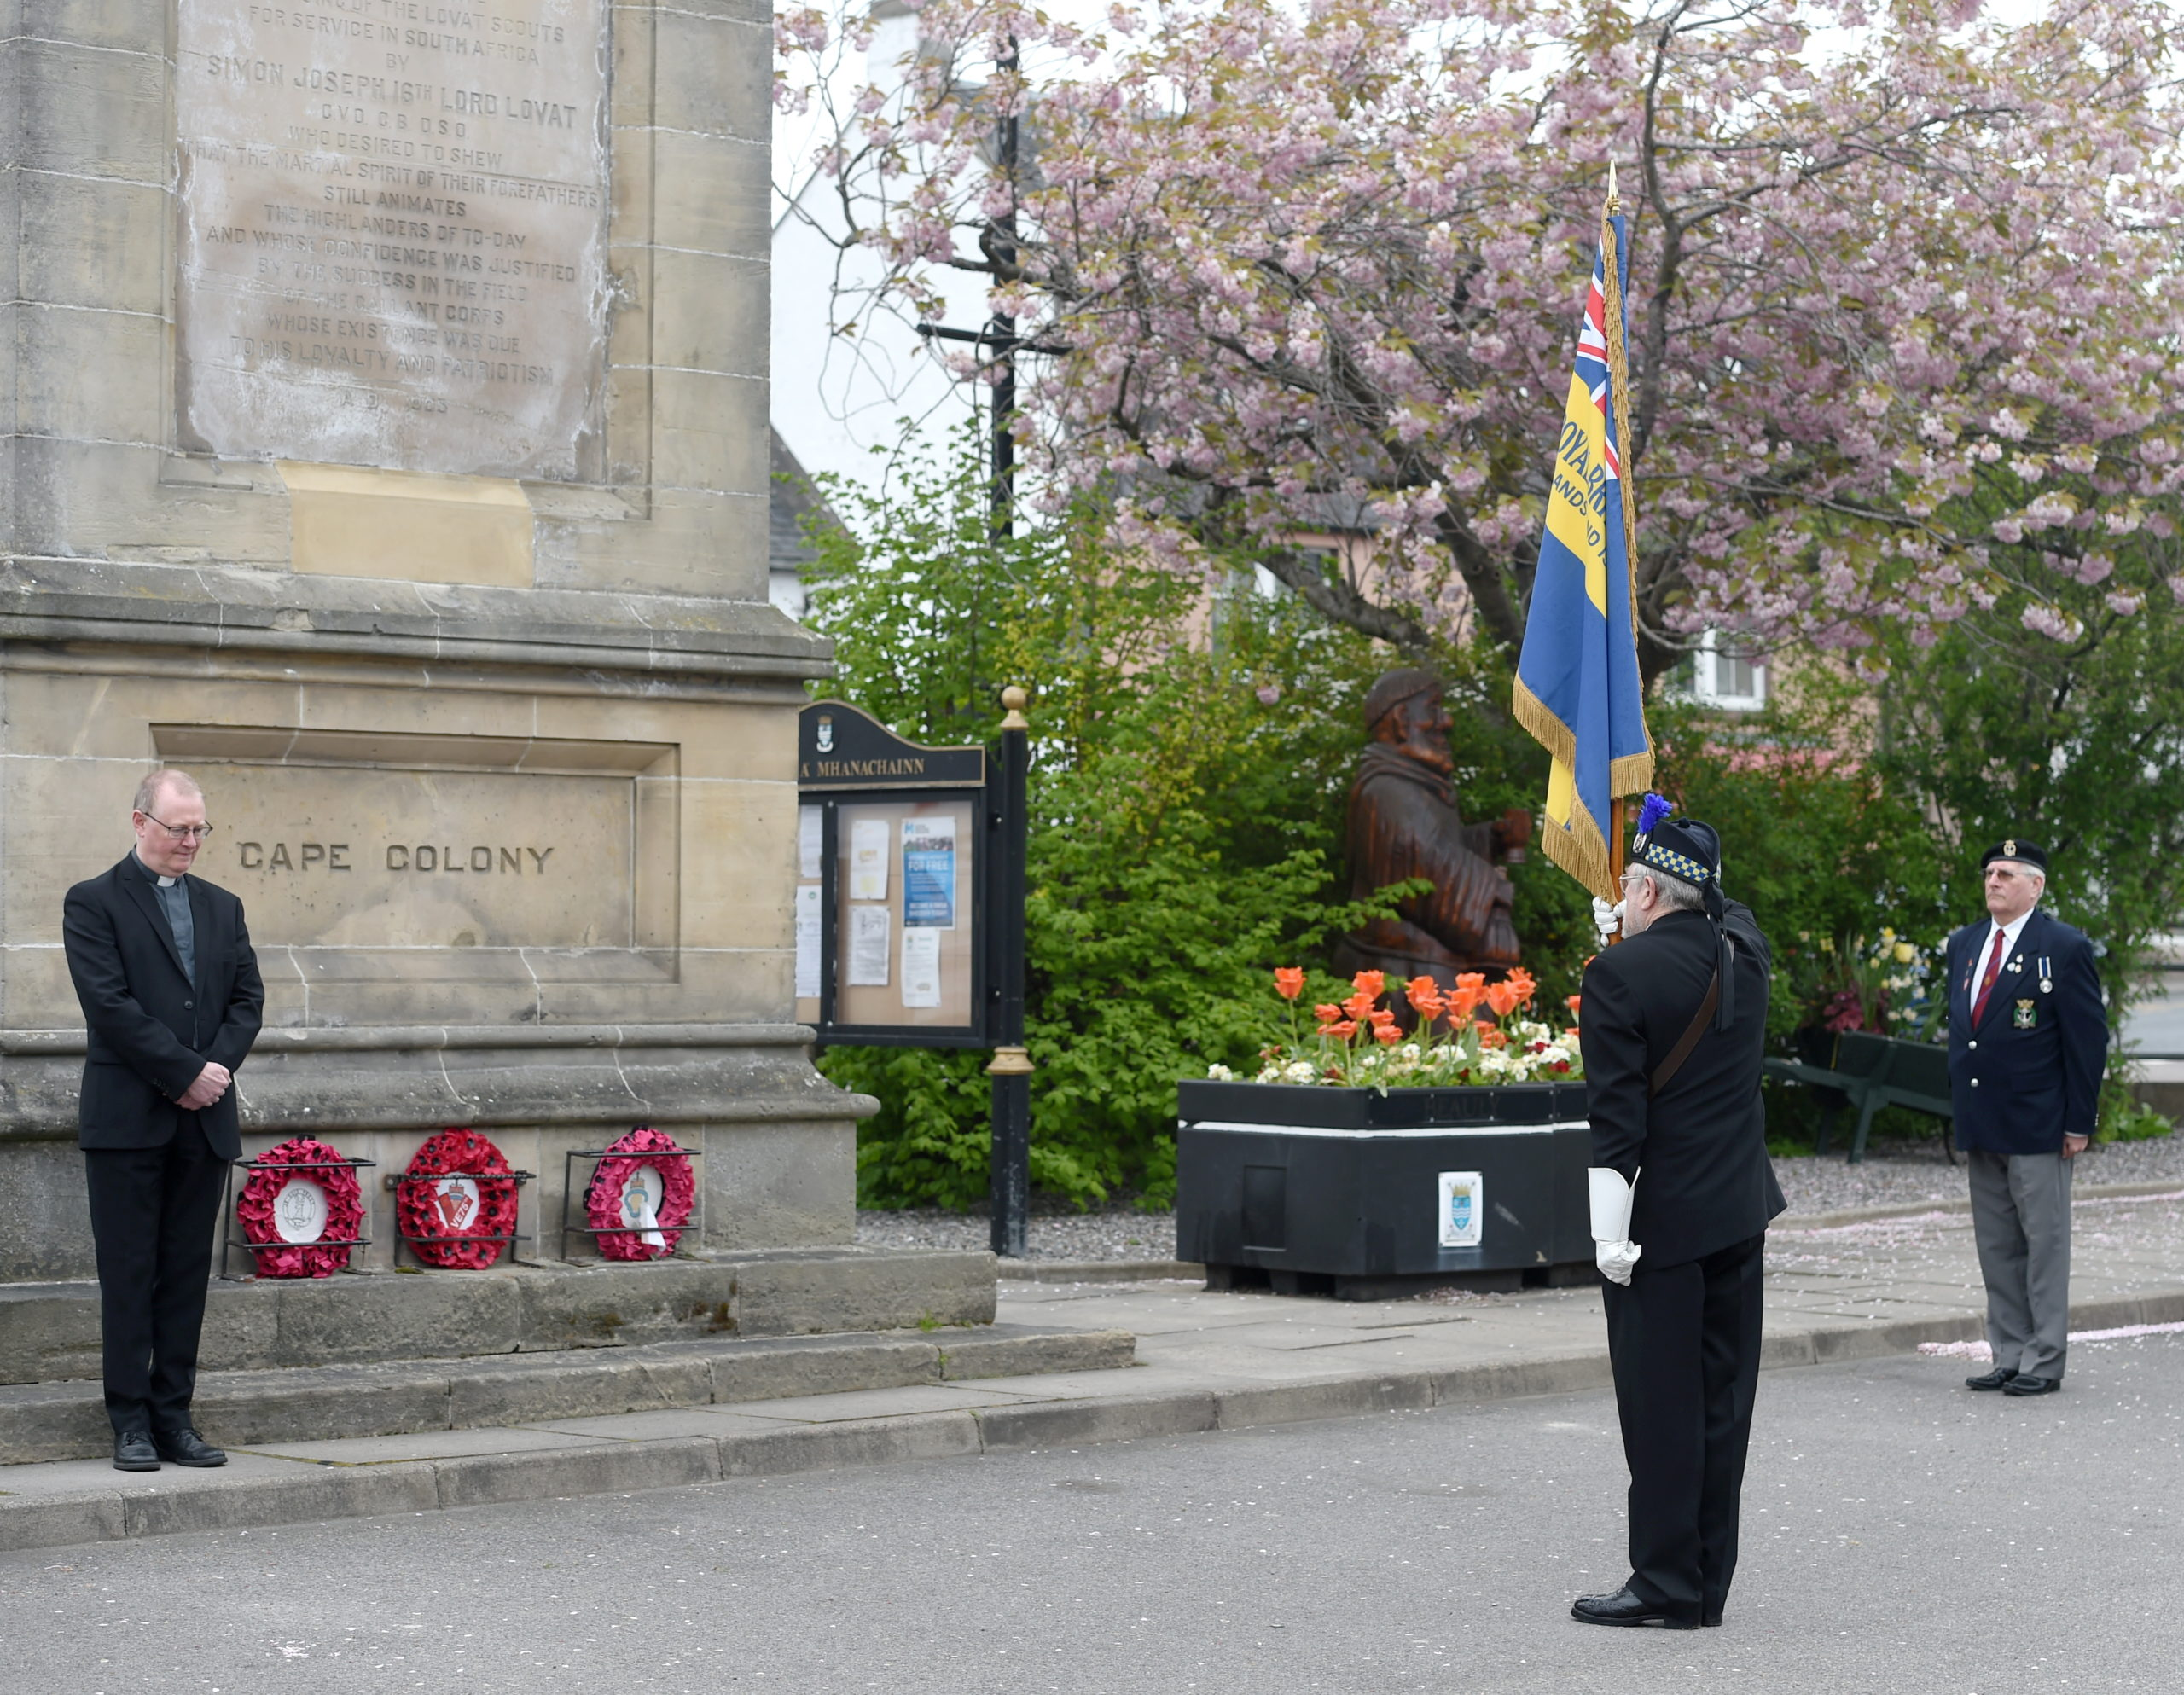 Beauly and District Royal British Legion Scotland (RBLS) yesterday held a very short service of remembrance on the 75th anniversary of VE Day in 1945. (L-R) Rev. Ian Manson, Bob Coburn Branch Chairman and Trevor Carnall Vice chairman who laid the wreath. Picture by Sandy McCook